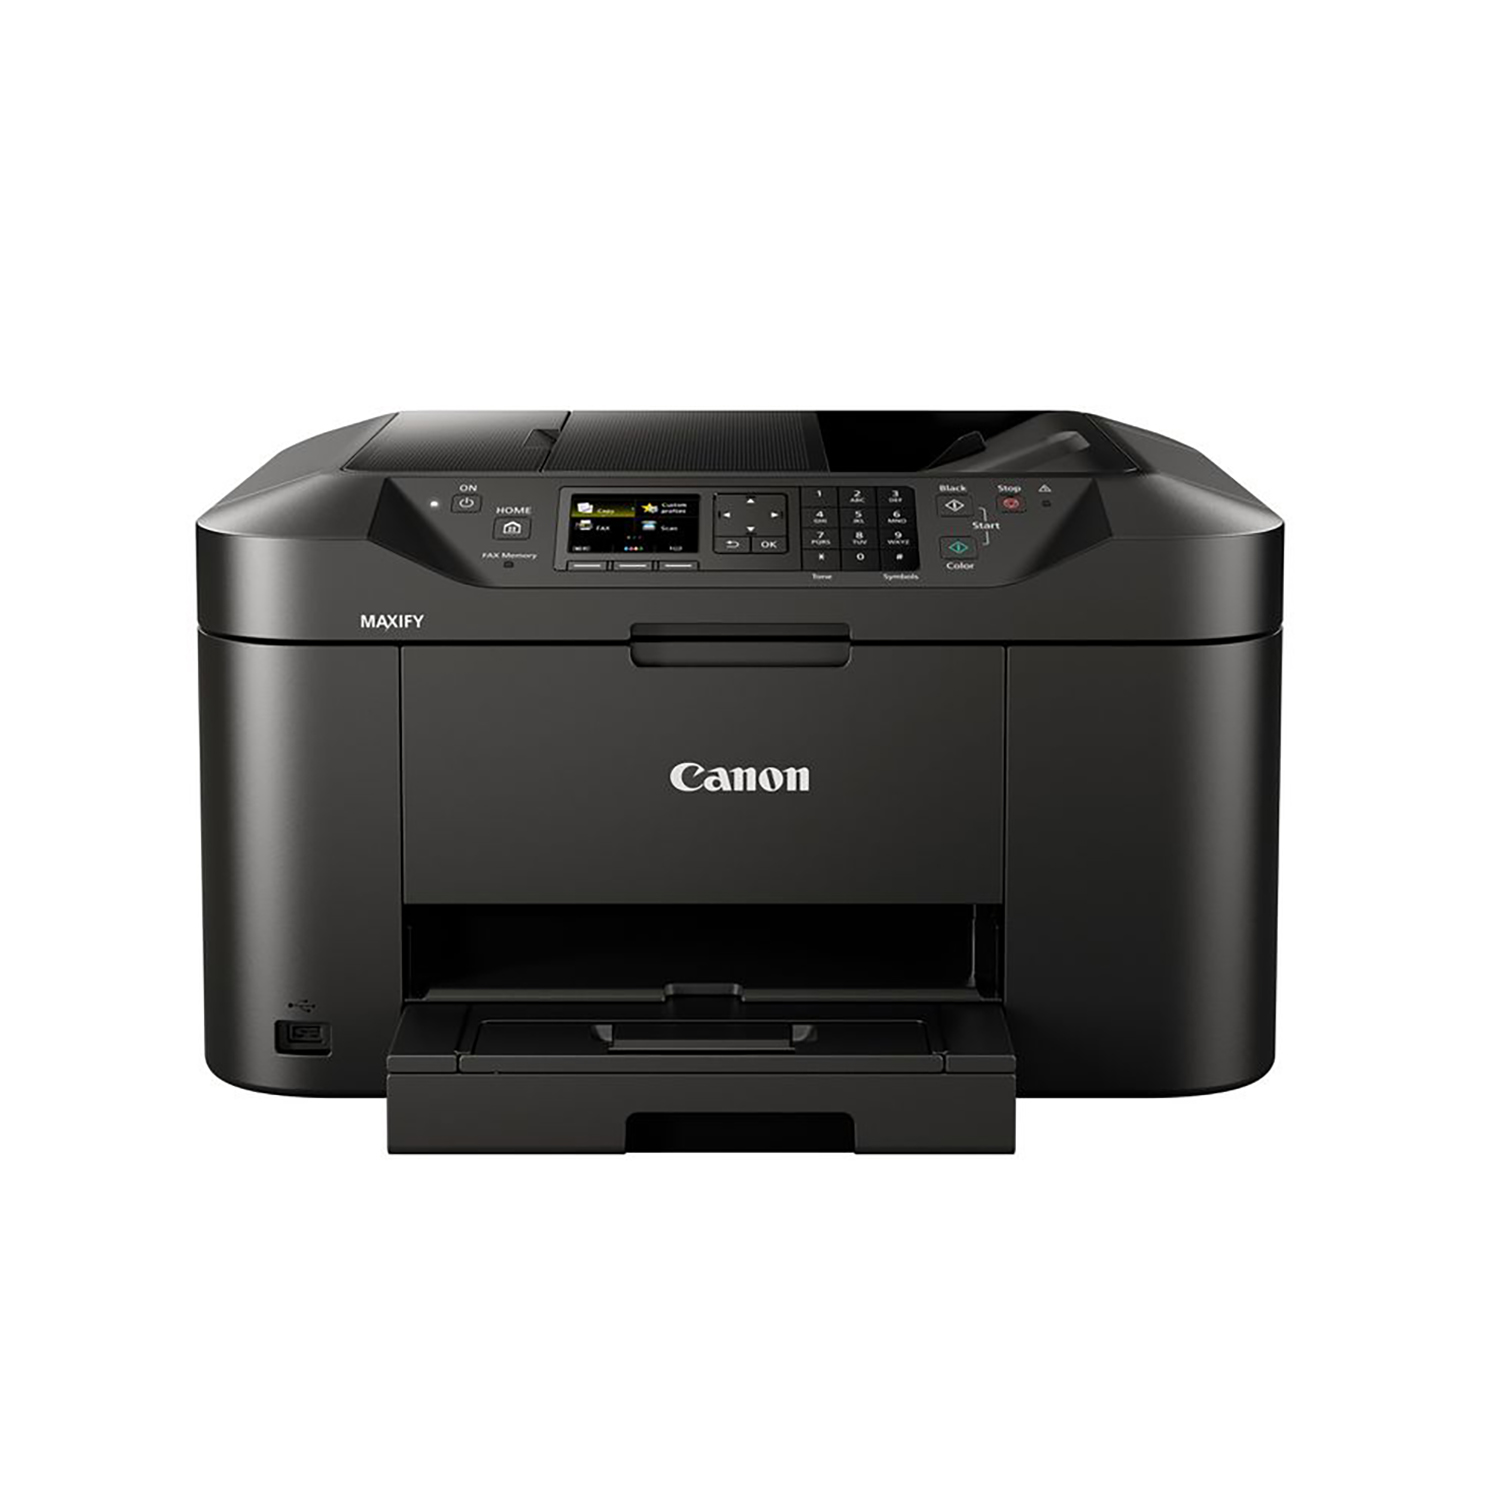 Canon Maxify MB2155 Multifunction Inkjet A4 Printer Black Ref 0959C028